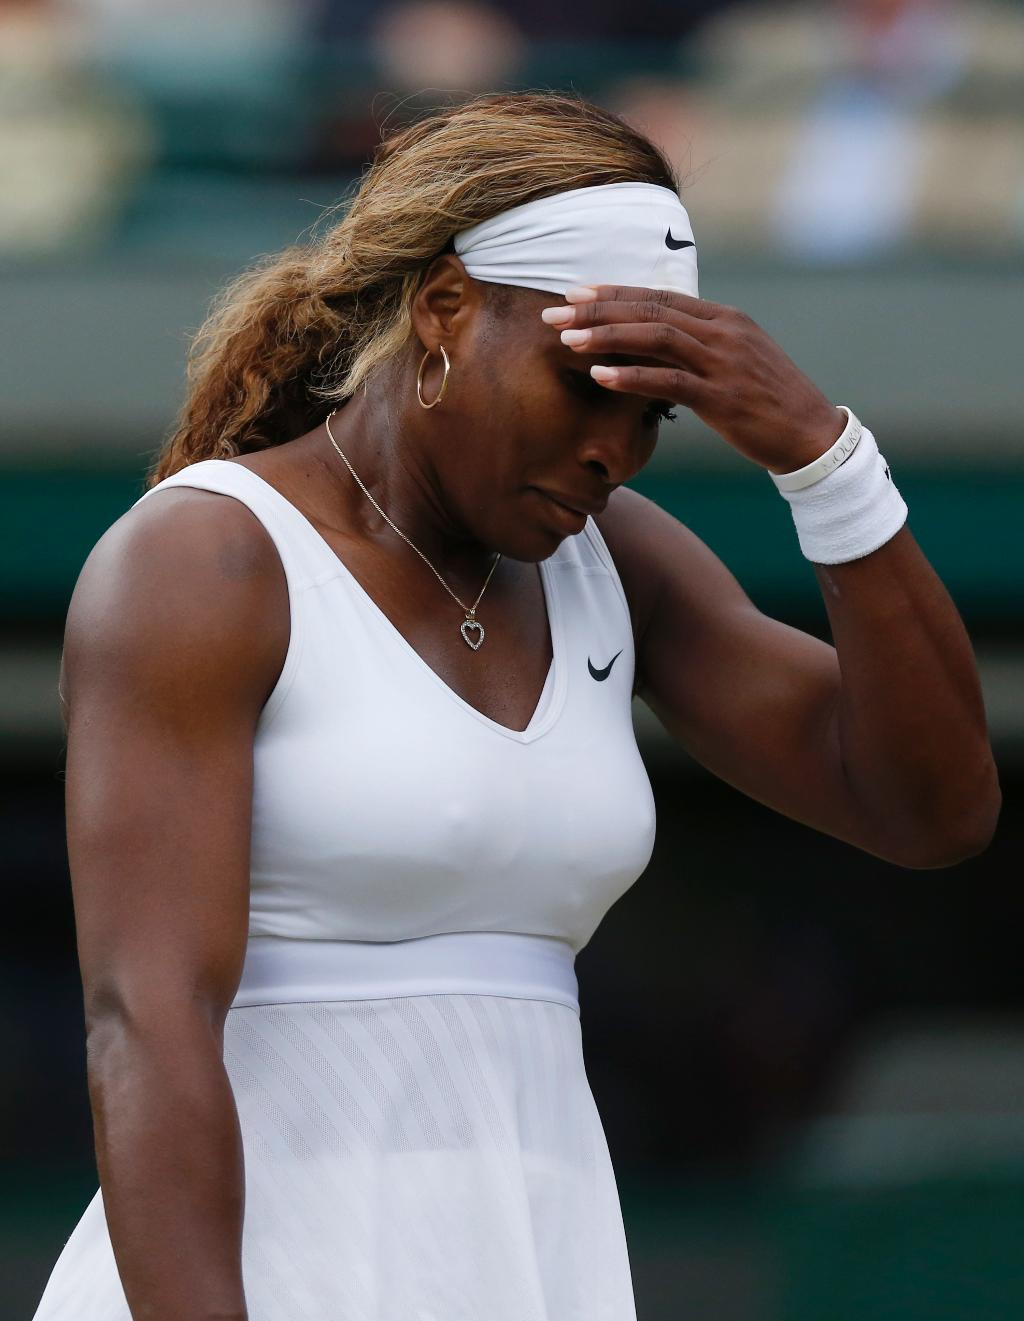 For 1st time in more than a century, zero men or women from US reach round of 16 at Wimbledon